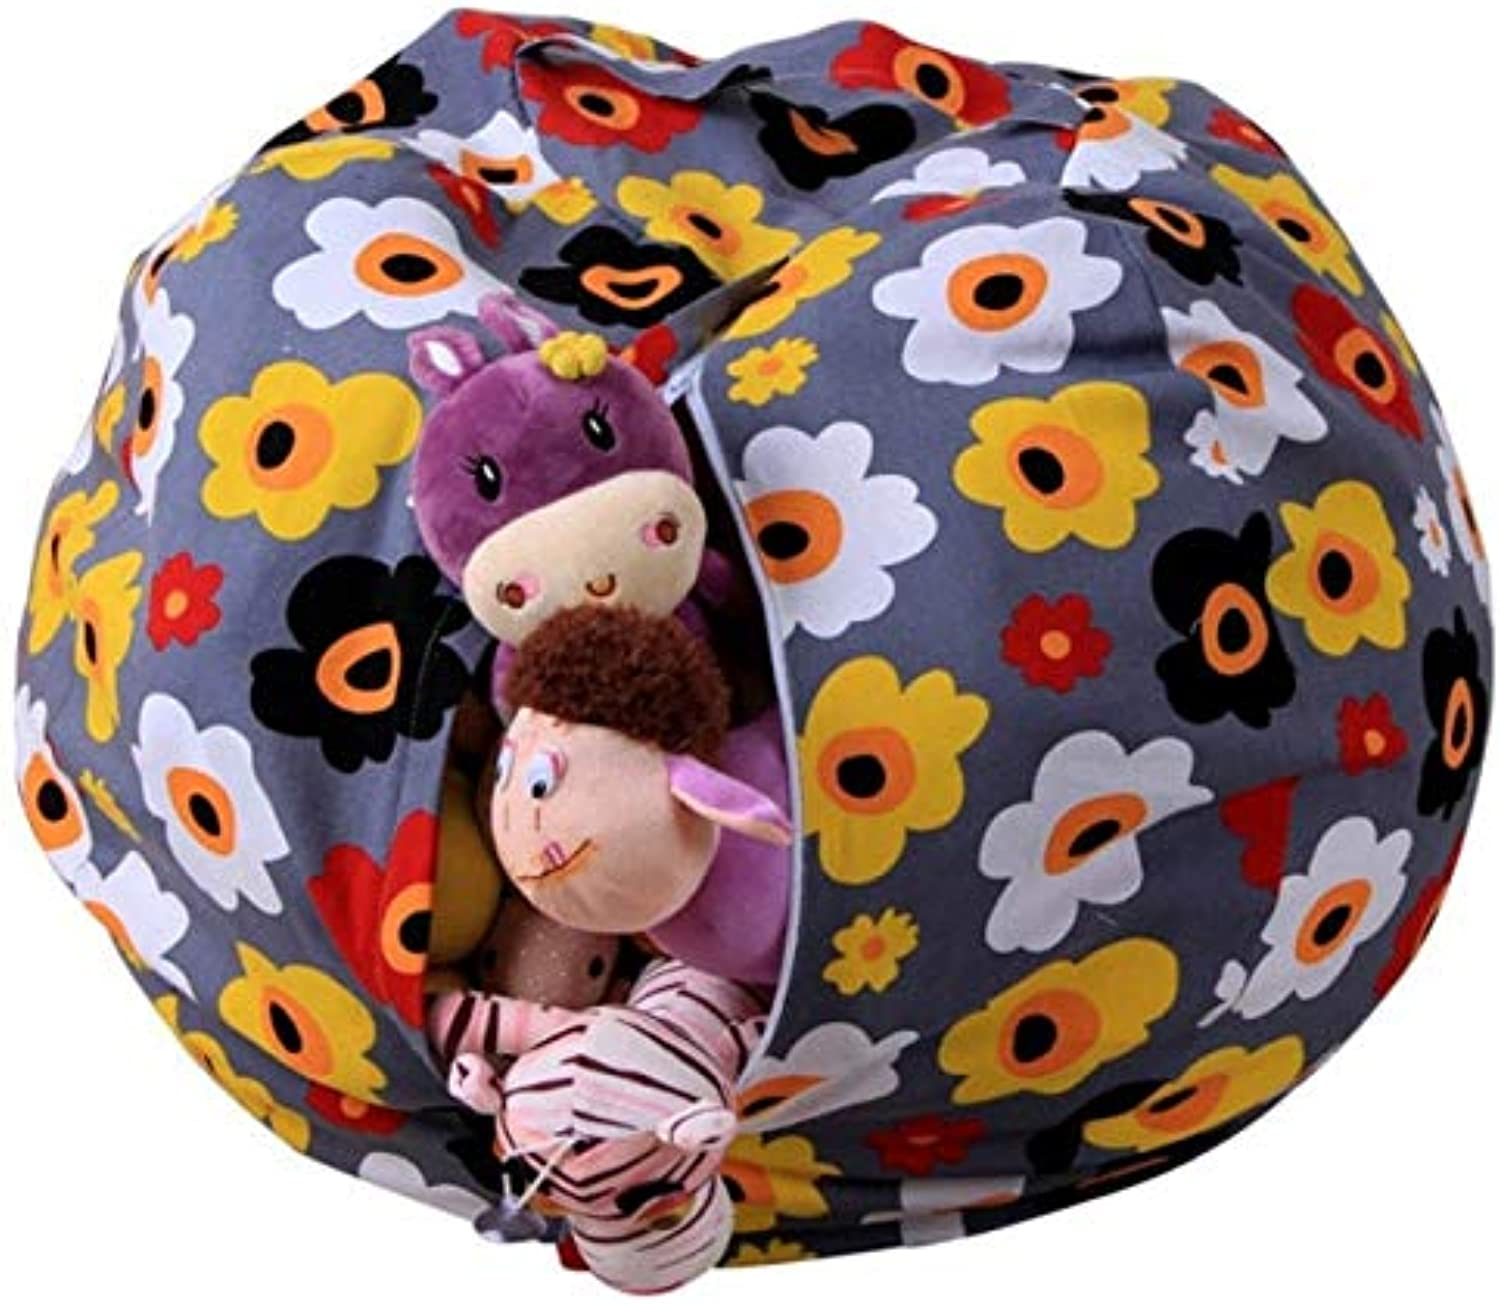 Toy Storage Bag  2 1 Portable Kid Toy Storage Bag Picnic Blanket Play Mat Organizer Box Practical Baby  Storehouse Suitcase Memory Purse Udder Cup Tea Board Pocketbook  1PCs